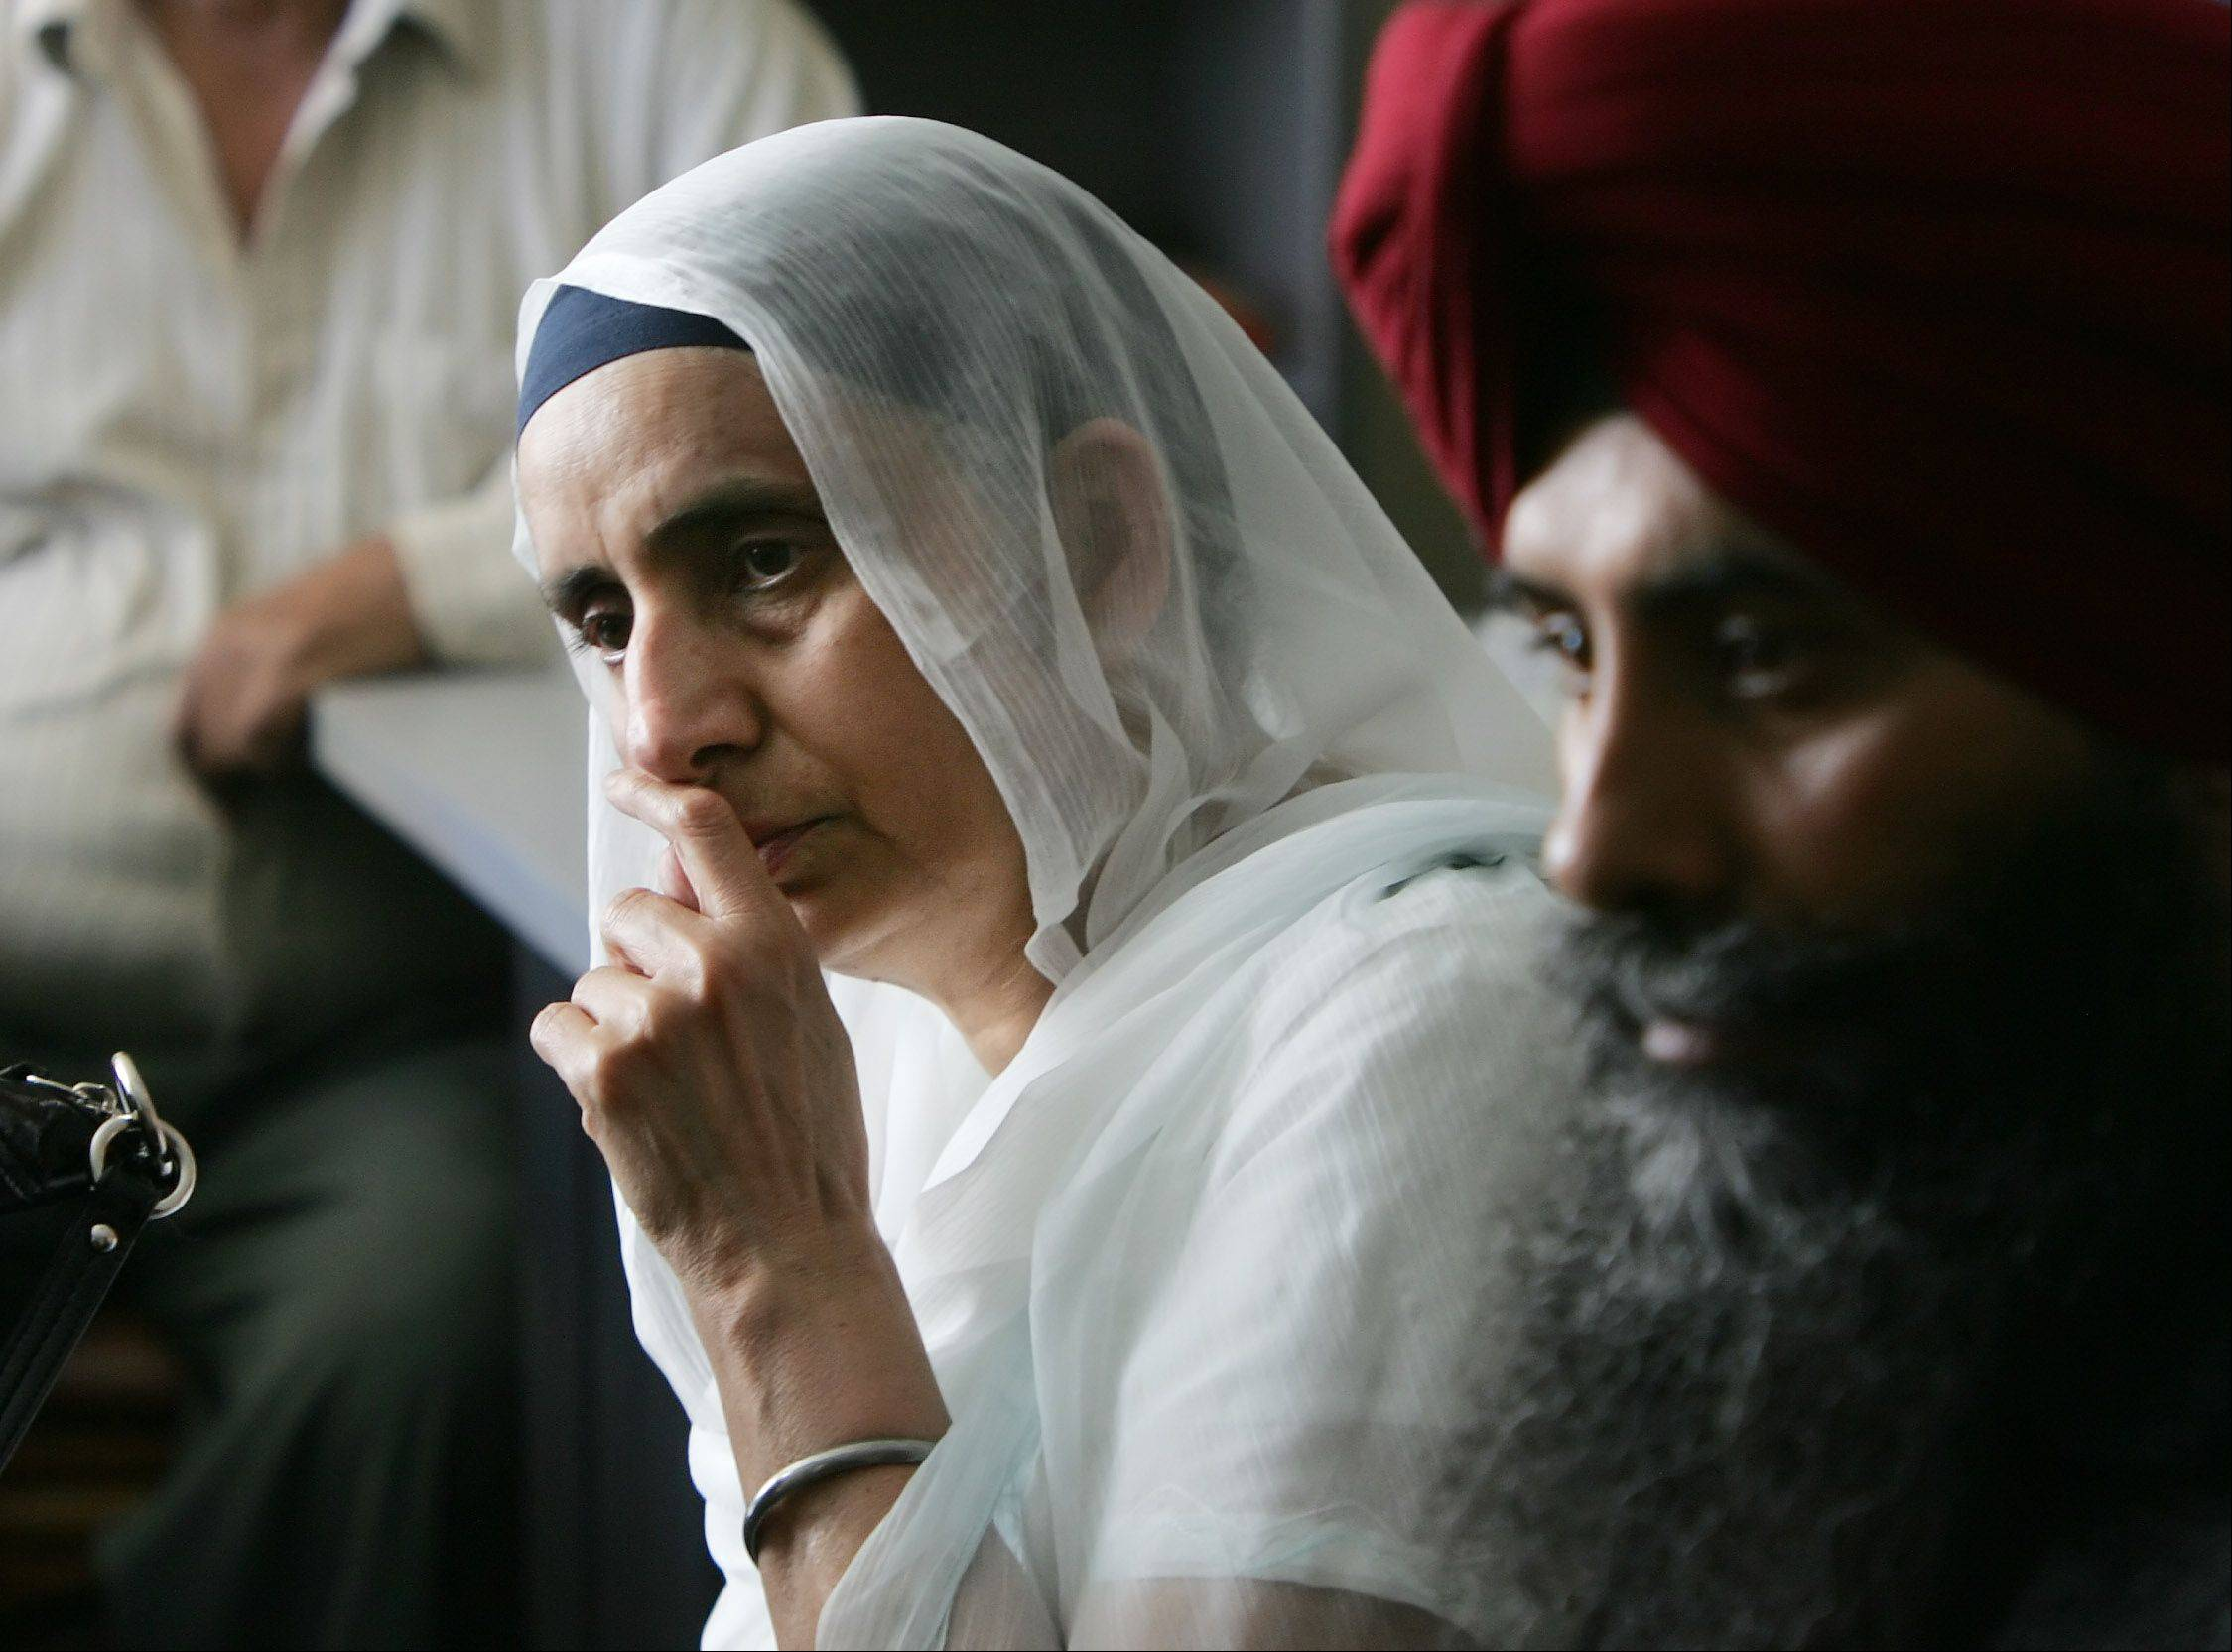 President Sukhdev K. Ghuman and other members of the Gurudawara Sikh Religious Society in Palatine watch news of the shooting at a Sikh temple near Milwaukee Sunday.